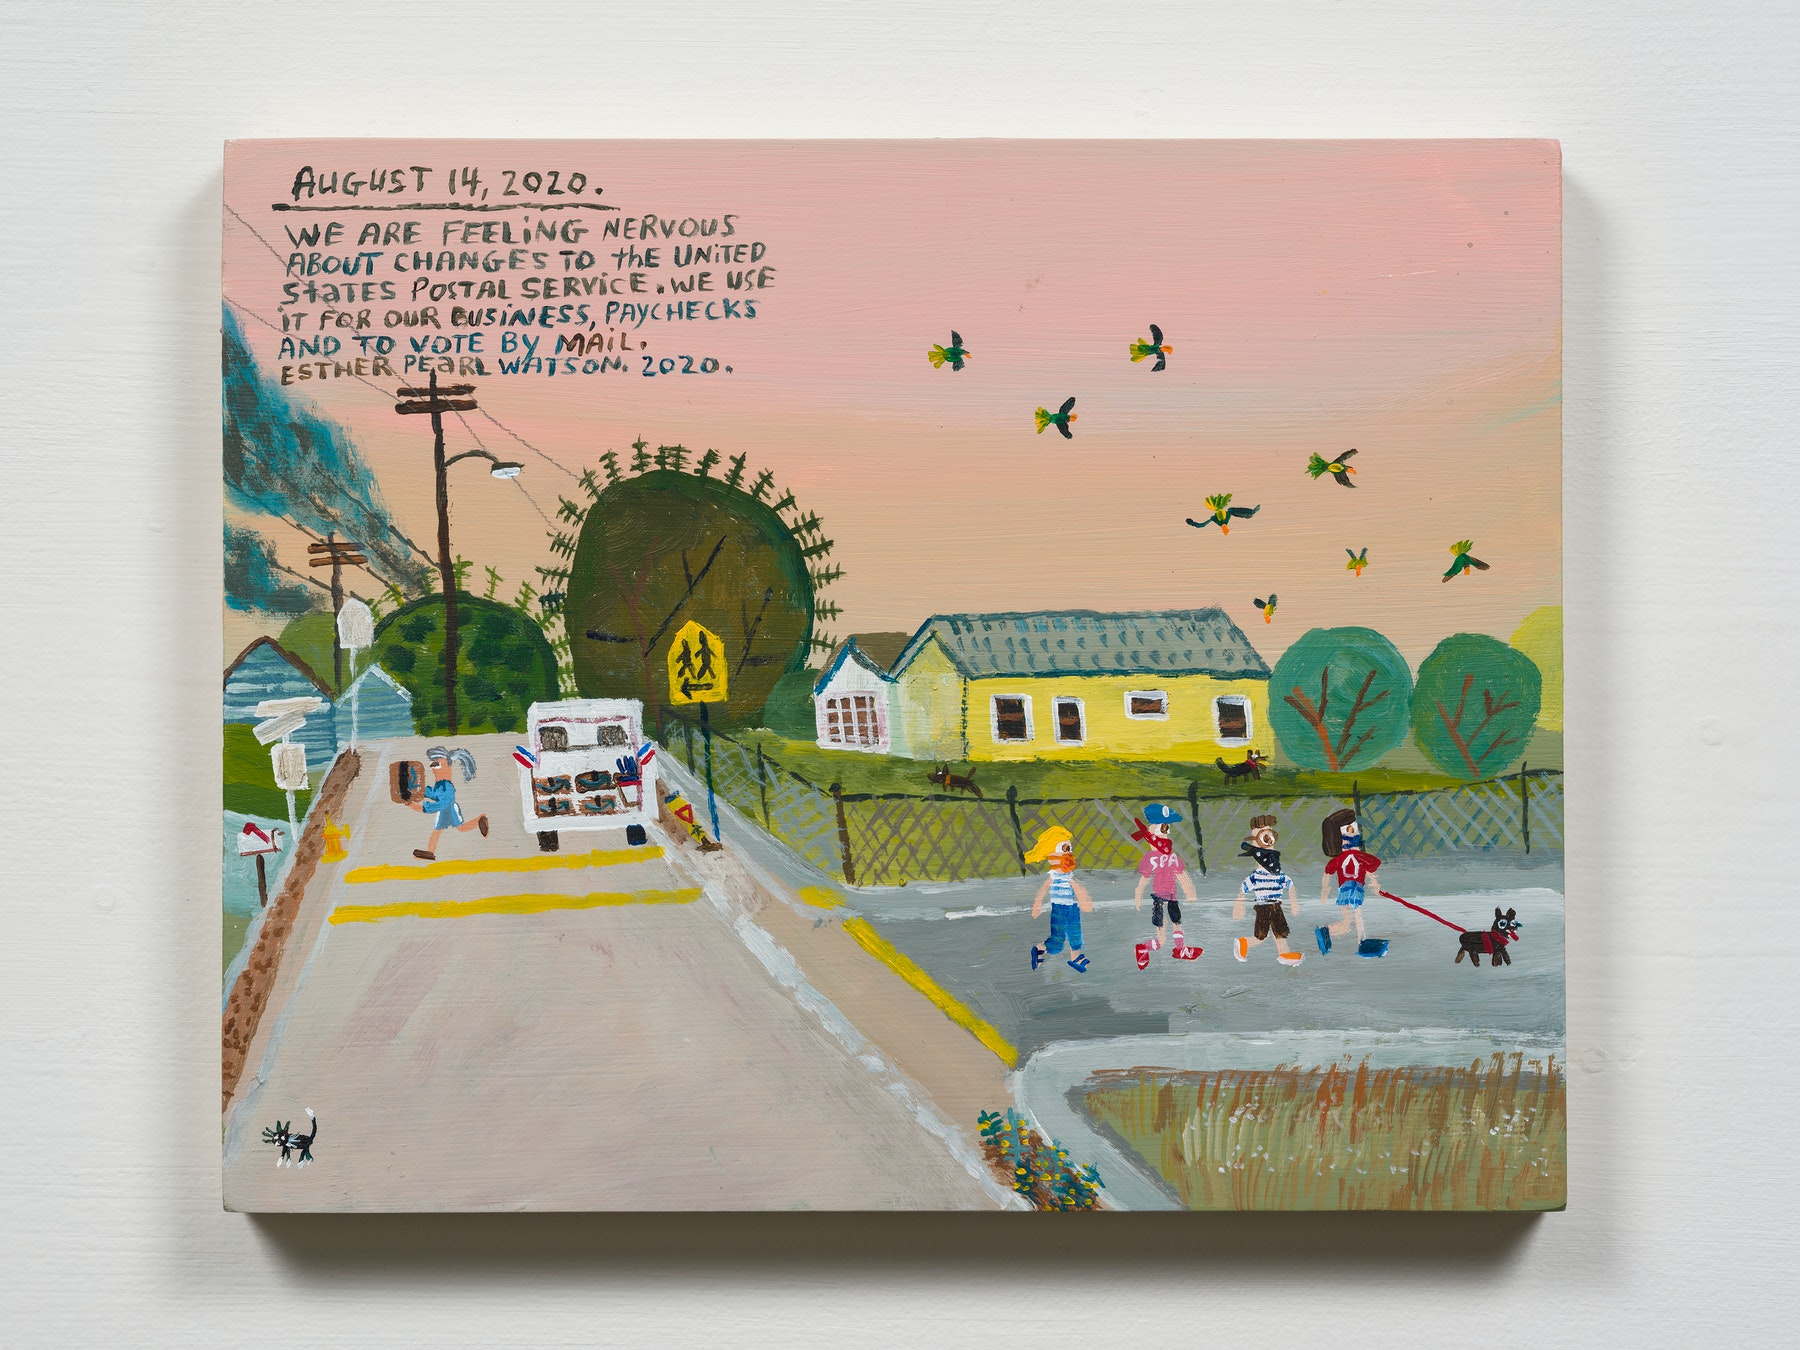 """Esther Pearl Watson """"August 14, Changes To the United States Postal Service,"""" 2020 Acrylic with pencil on panel 8 x 10"""" [HxW] (20.32 x 25.4 cm) Inventory #EPW326 Courtesy of the artist and Vielmetter Los Angeles Photo credit: Jeff Mclane"""